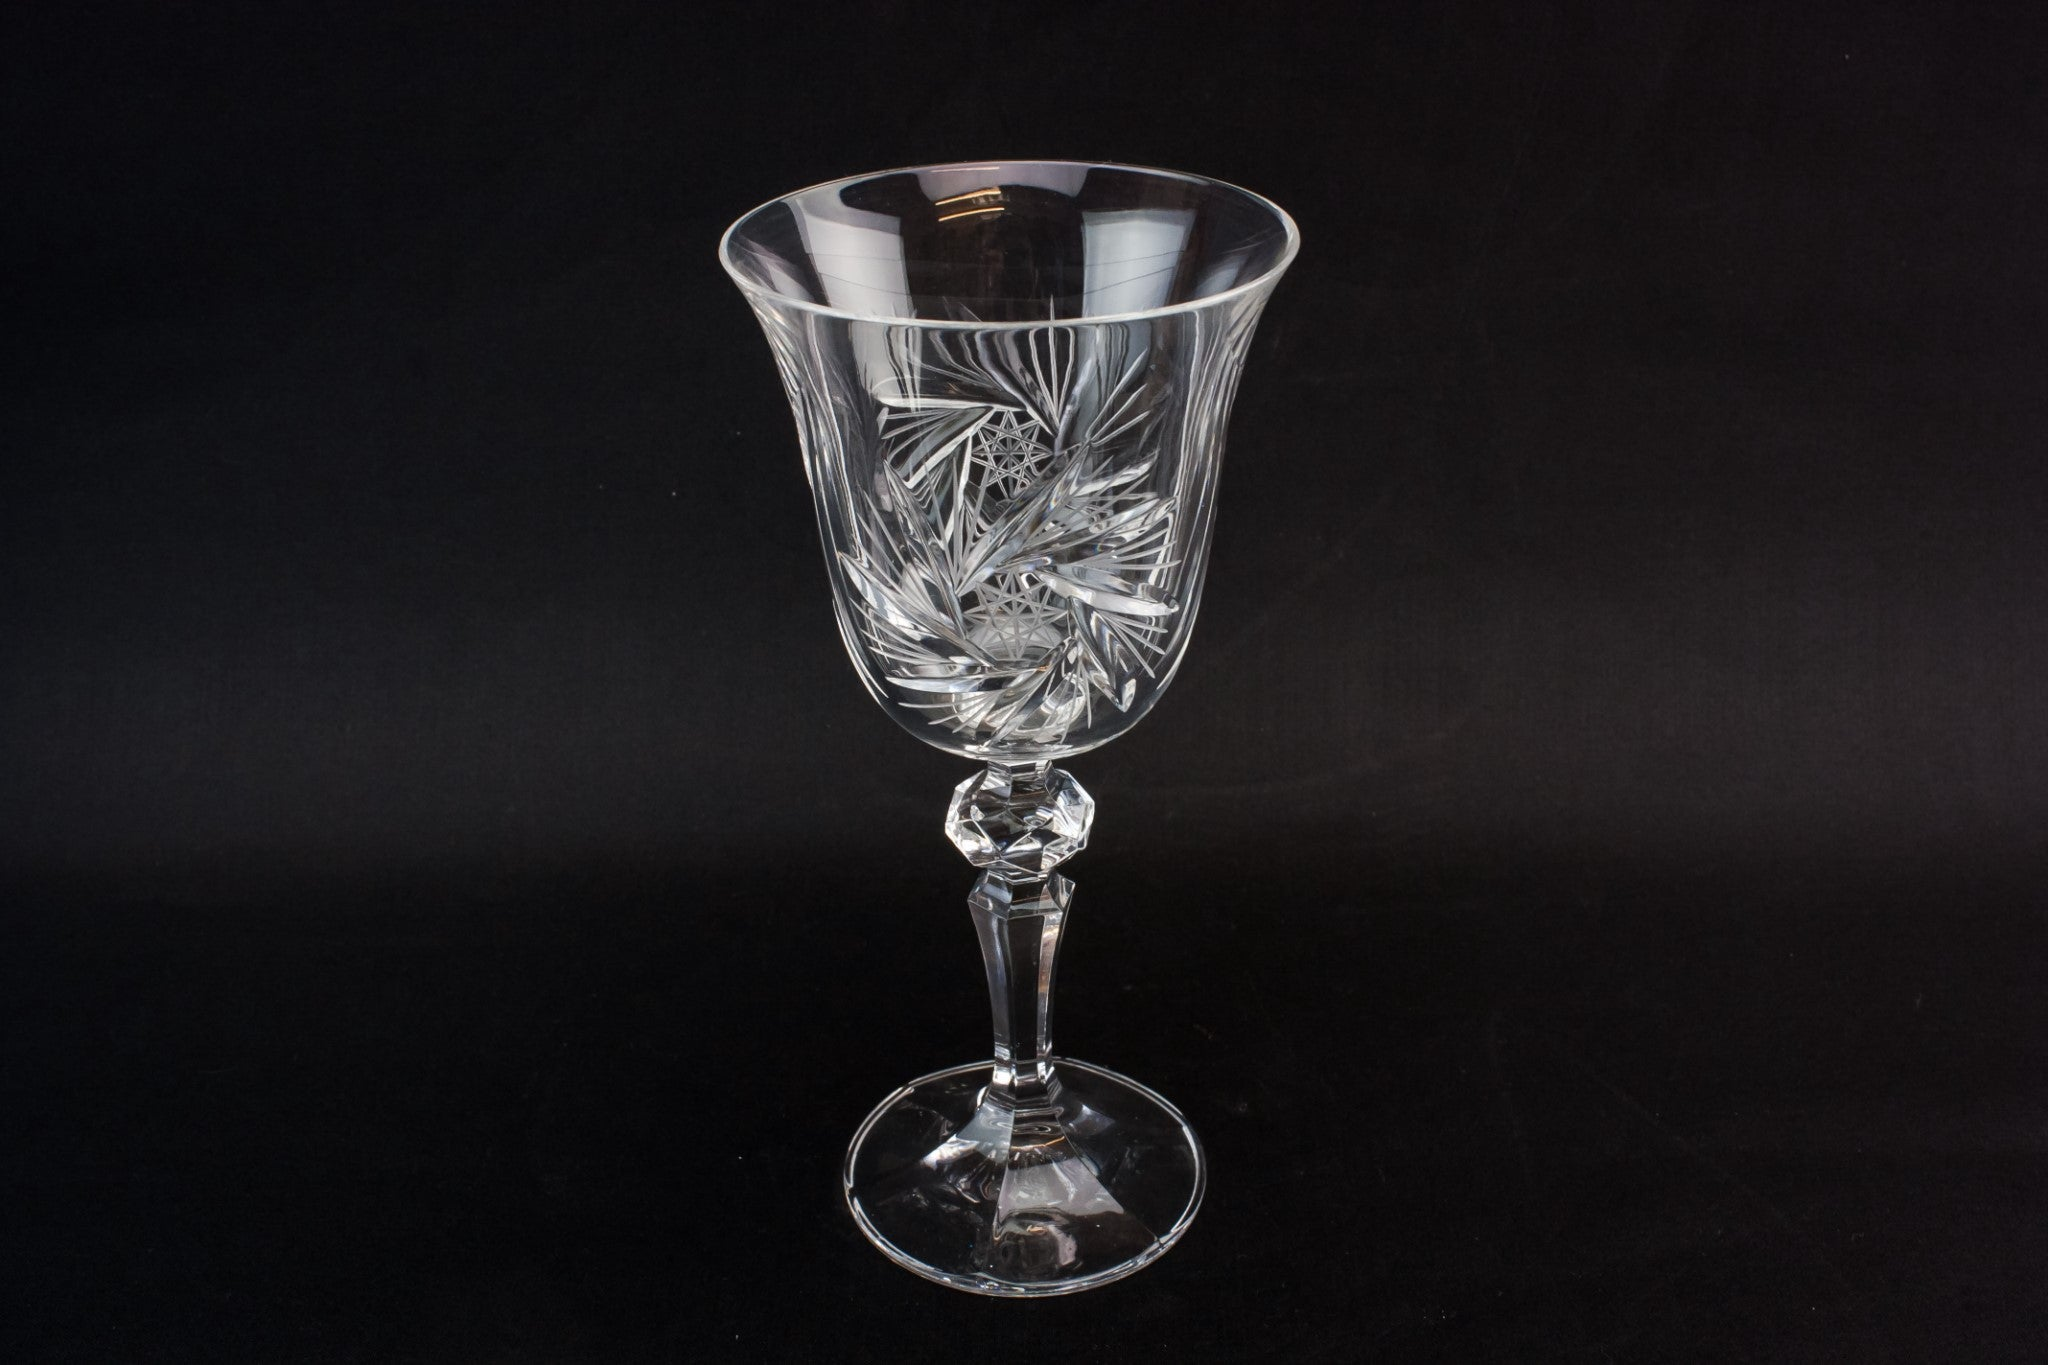 4 stem wine glasses